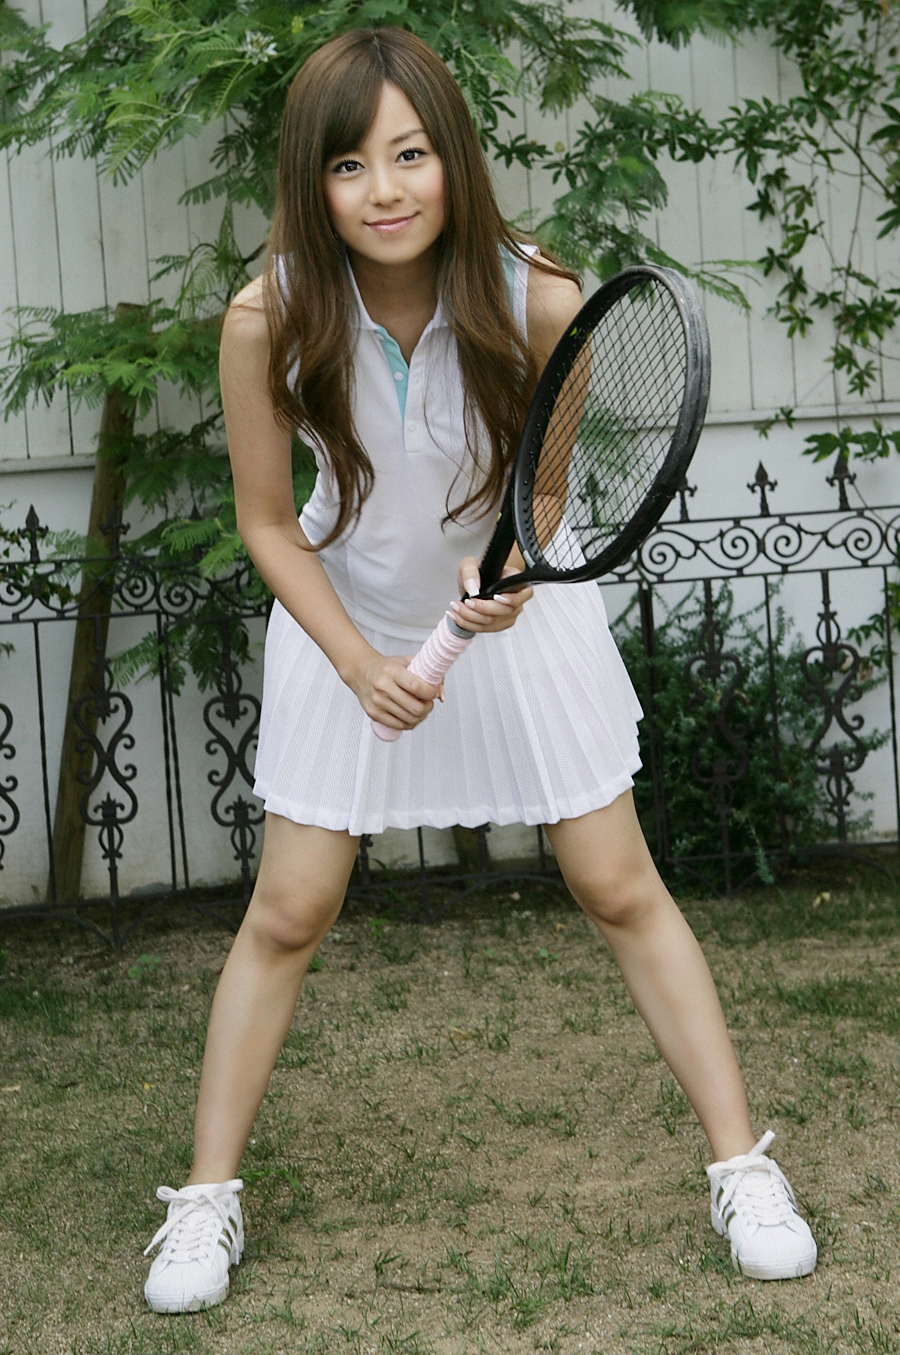 Japanese Girl Pictures (cute pic): Play tennis wiht Jun ...